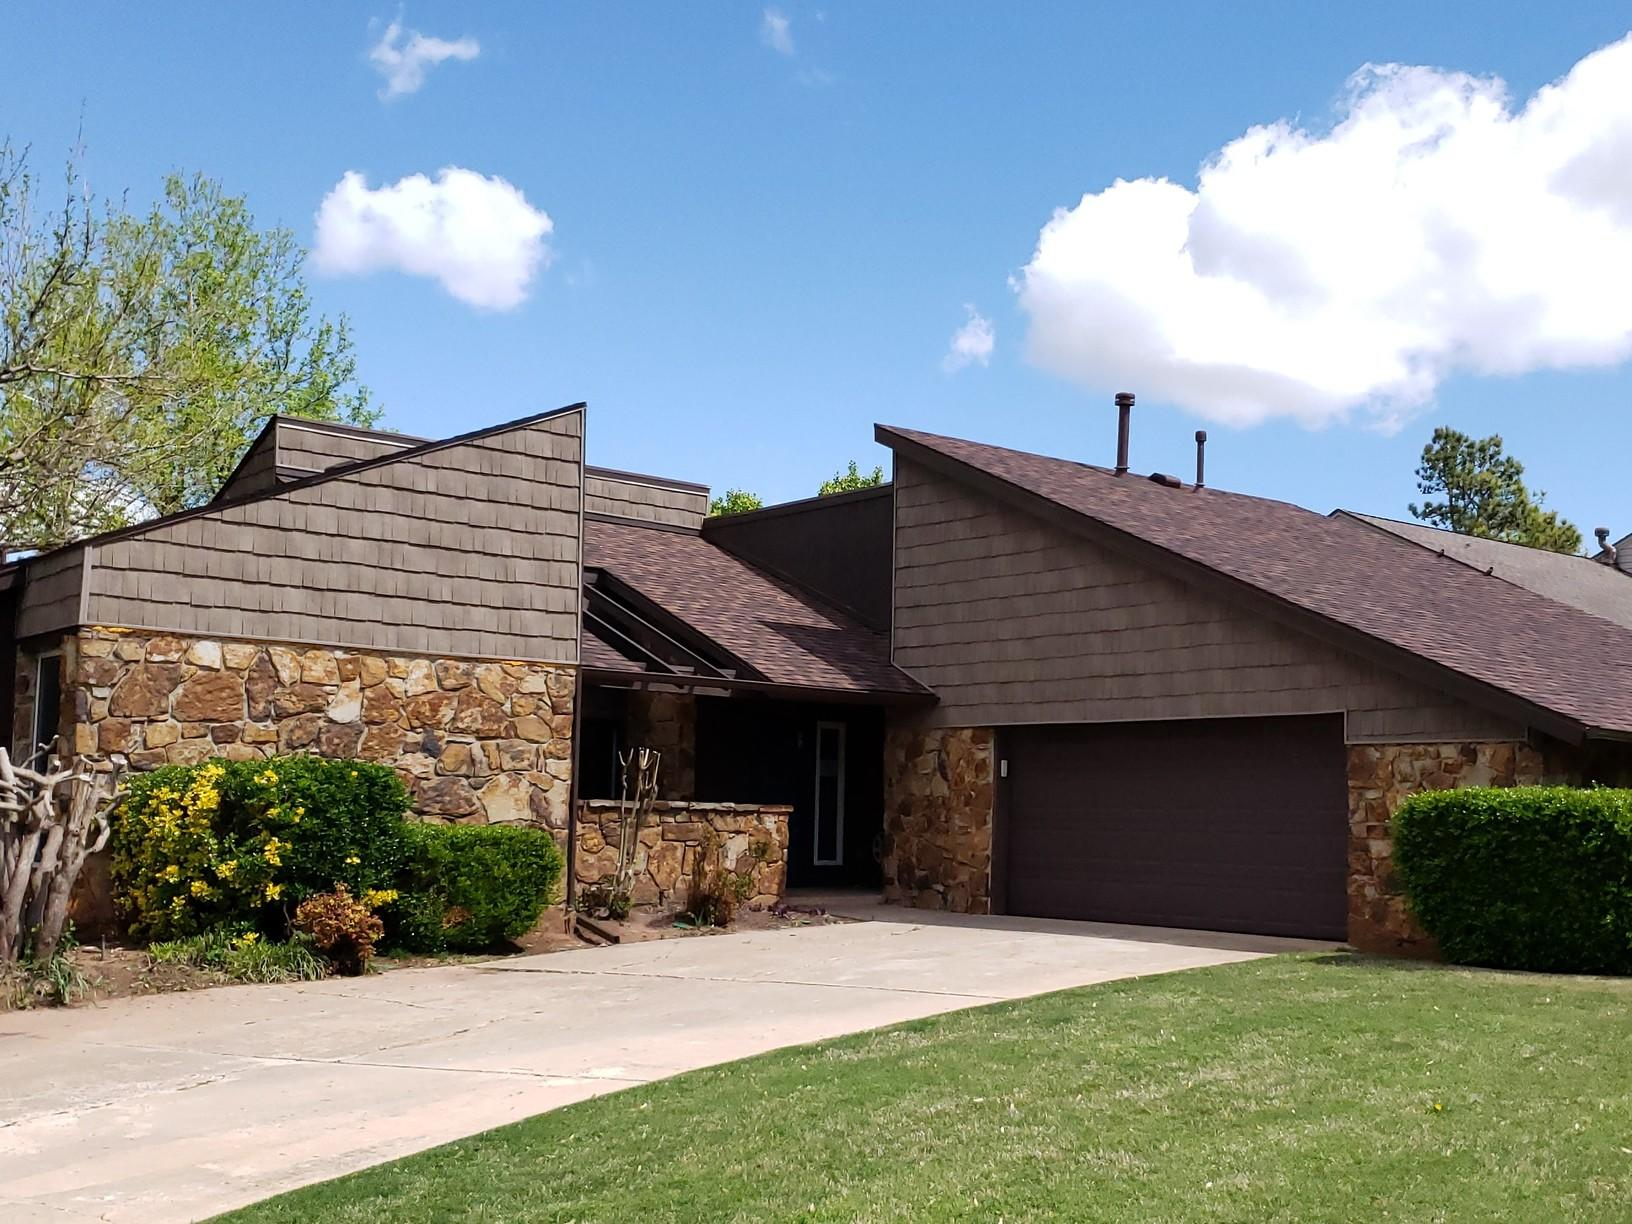 New Roof, Siding, & Gutters in Edmond - After Photo